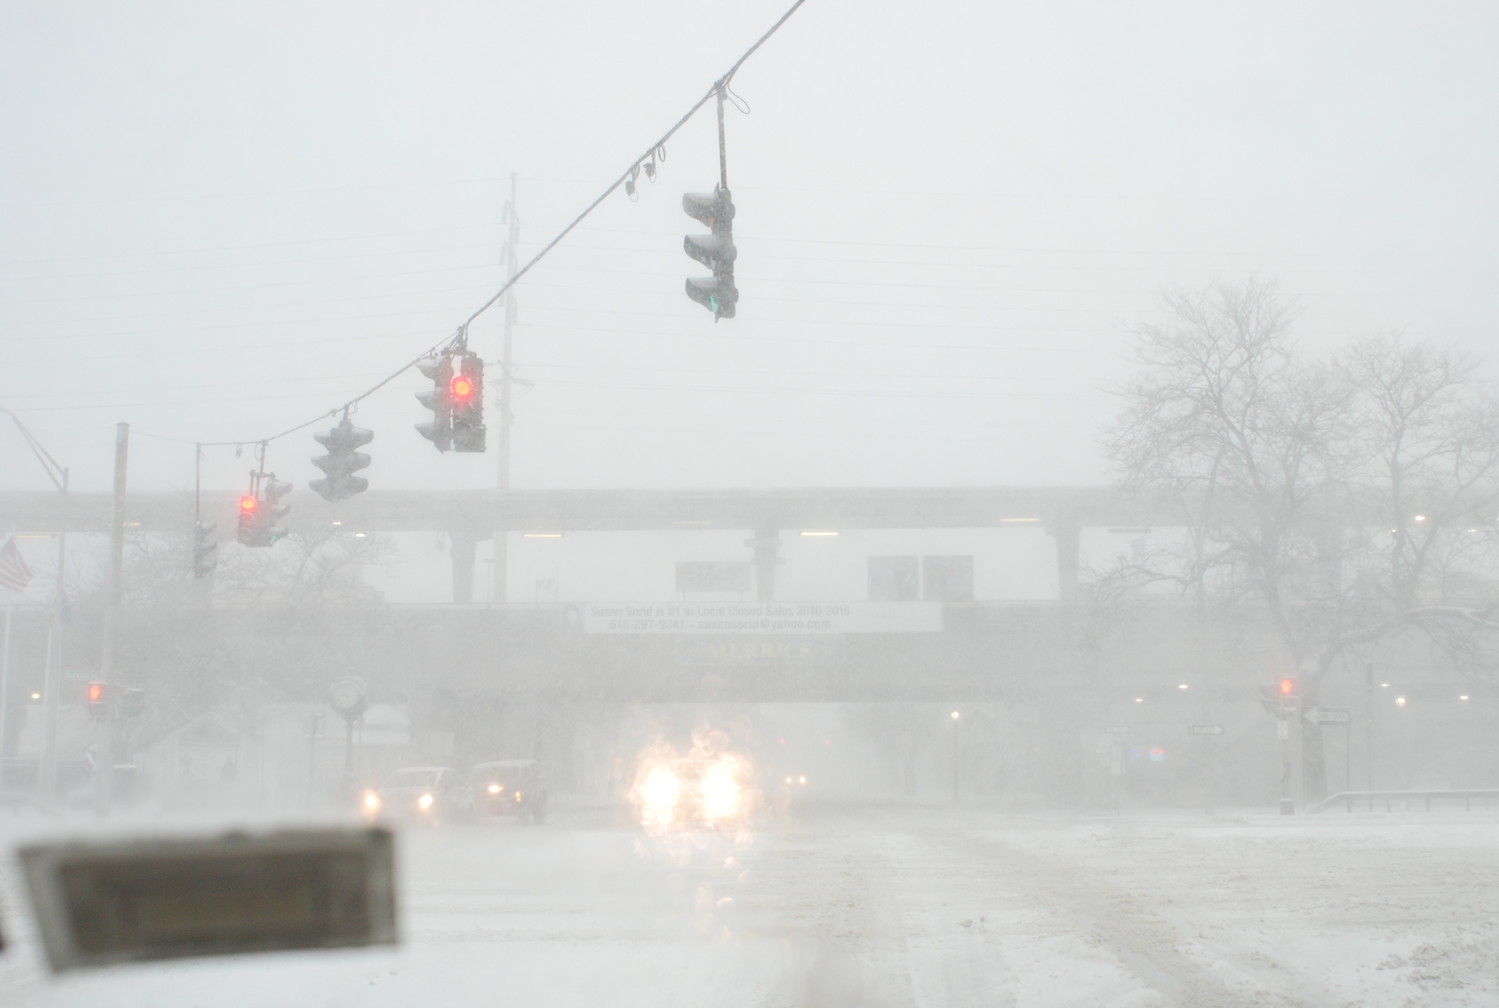 Visibility was poor at the corner of Merrick Avenue and Sunrise Highway in Merrick.